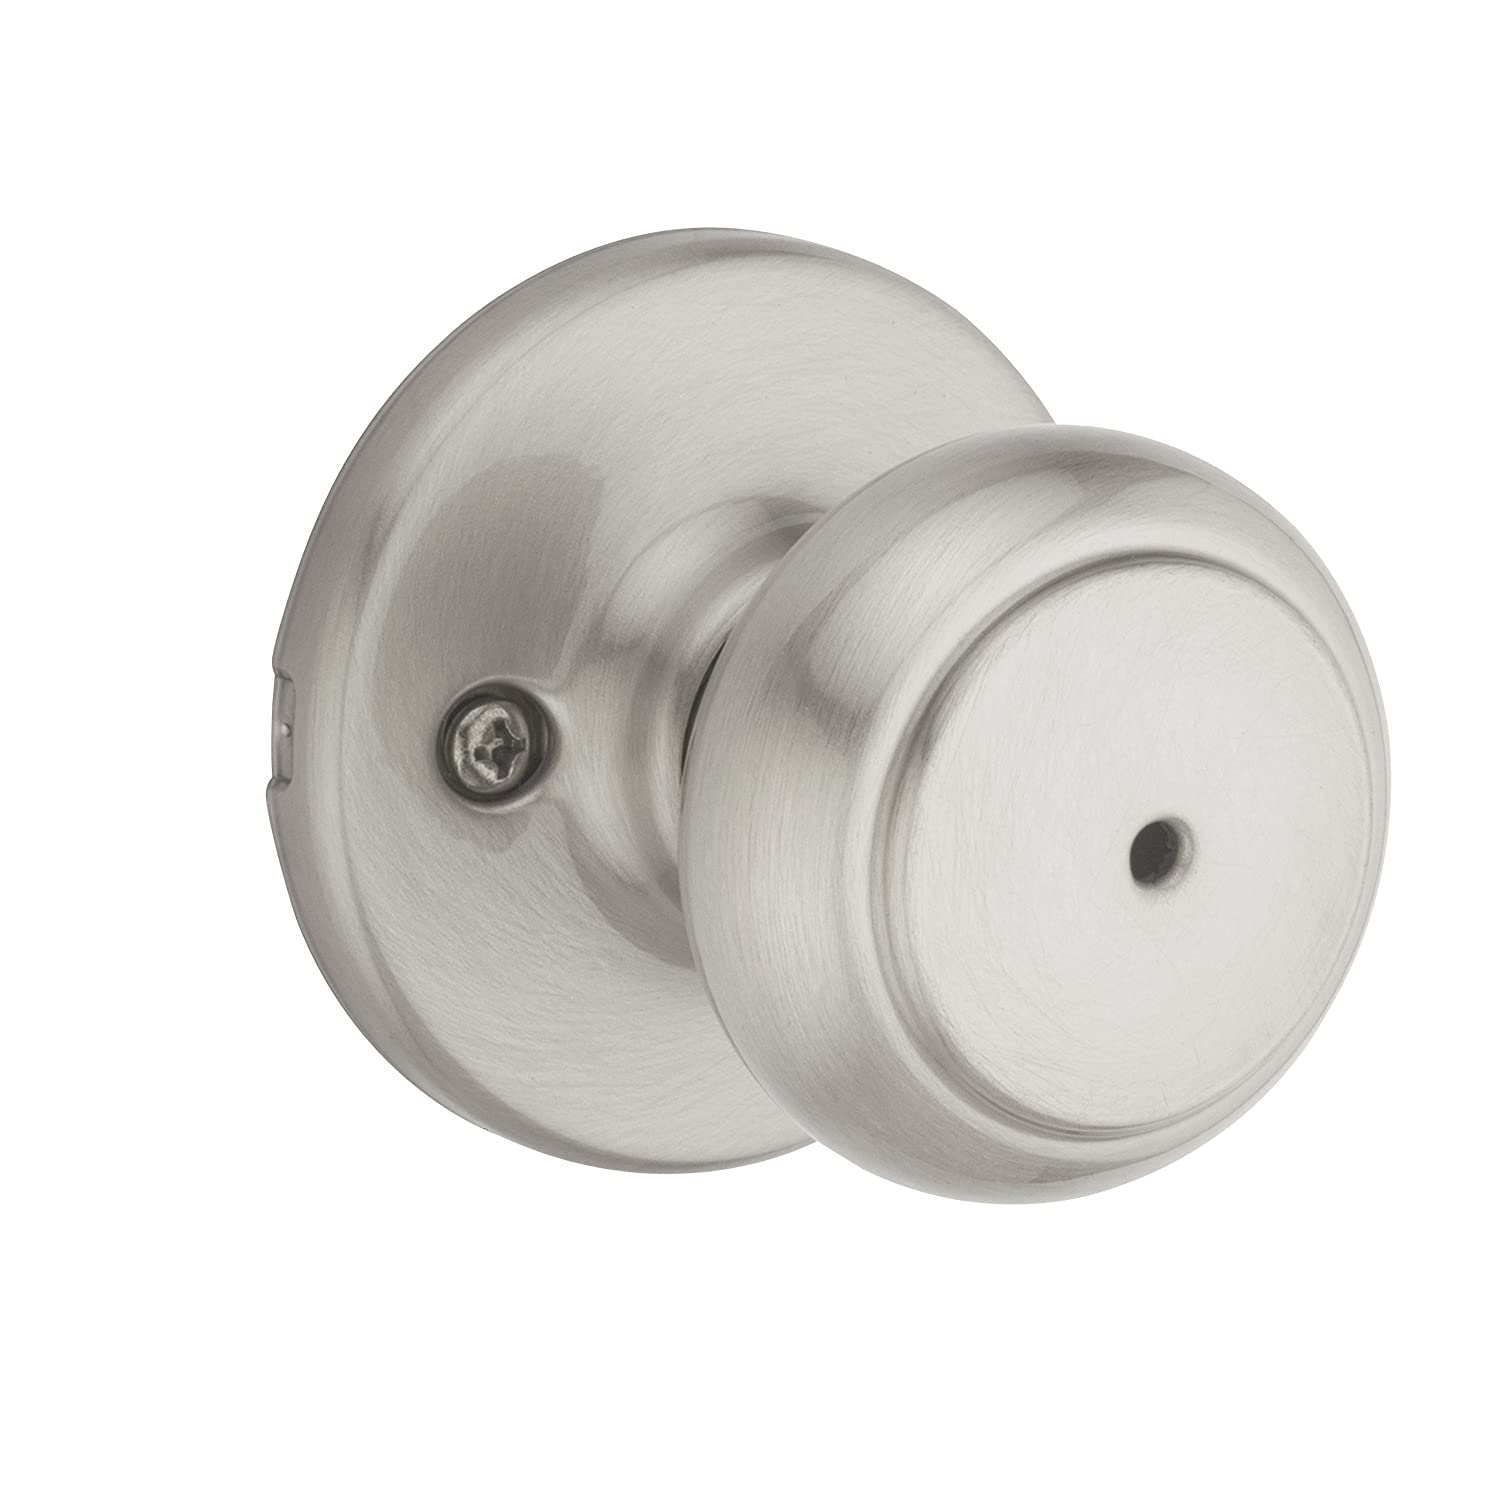 Kwikset 93001-868 Cove Privacy Knob Lockset Venetian Bronze